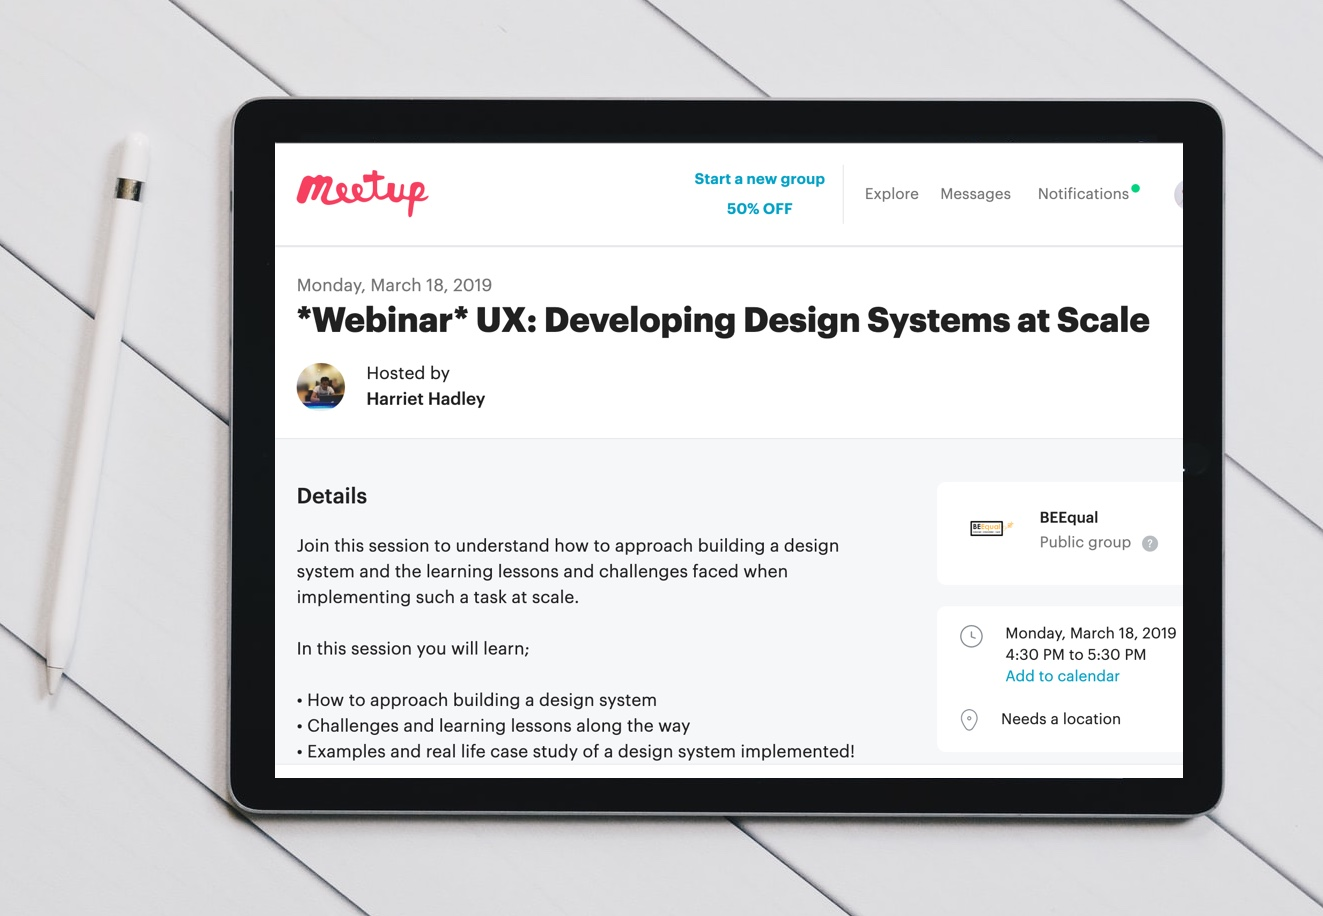 Screenshot of Meetup website showing a webinar invitation